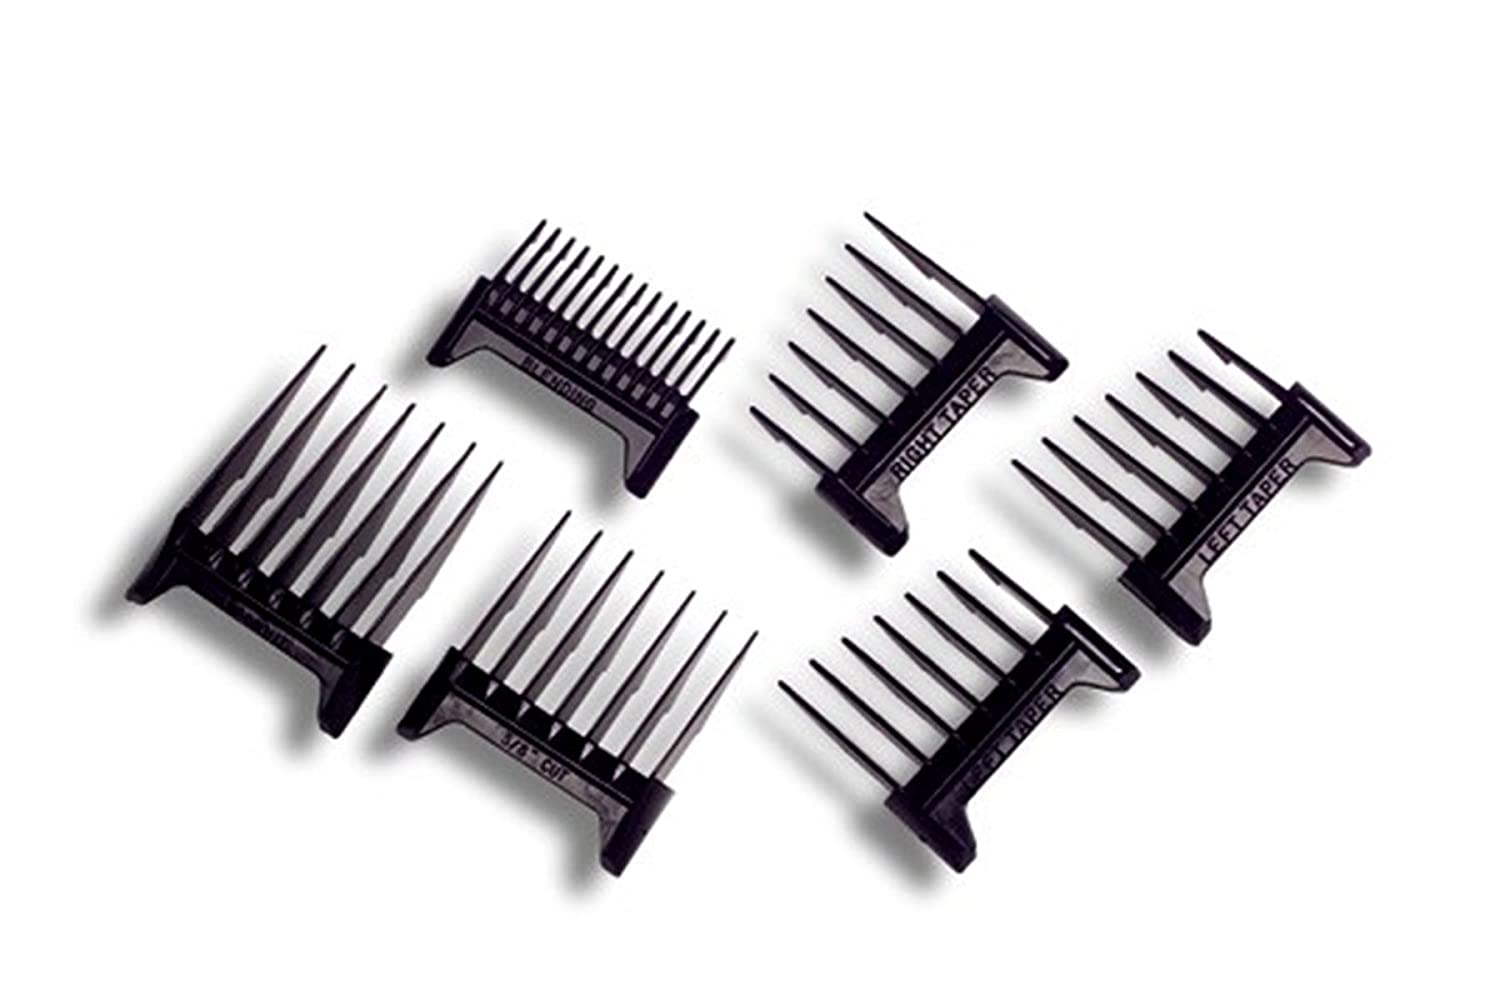 Oster Comb Attachment Blade Guard 6-Piece Set for Adjusta Groom.